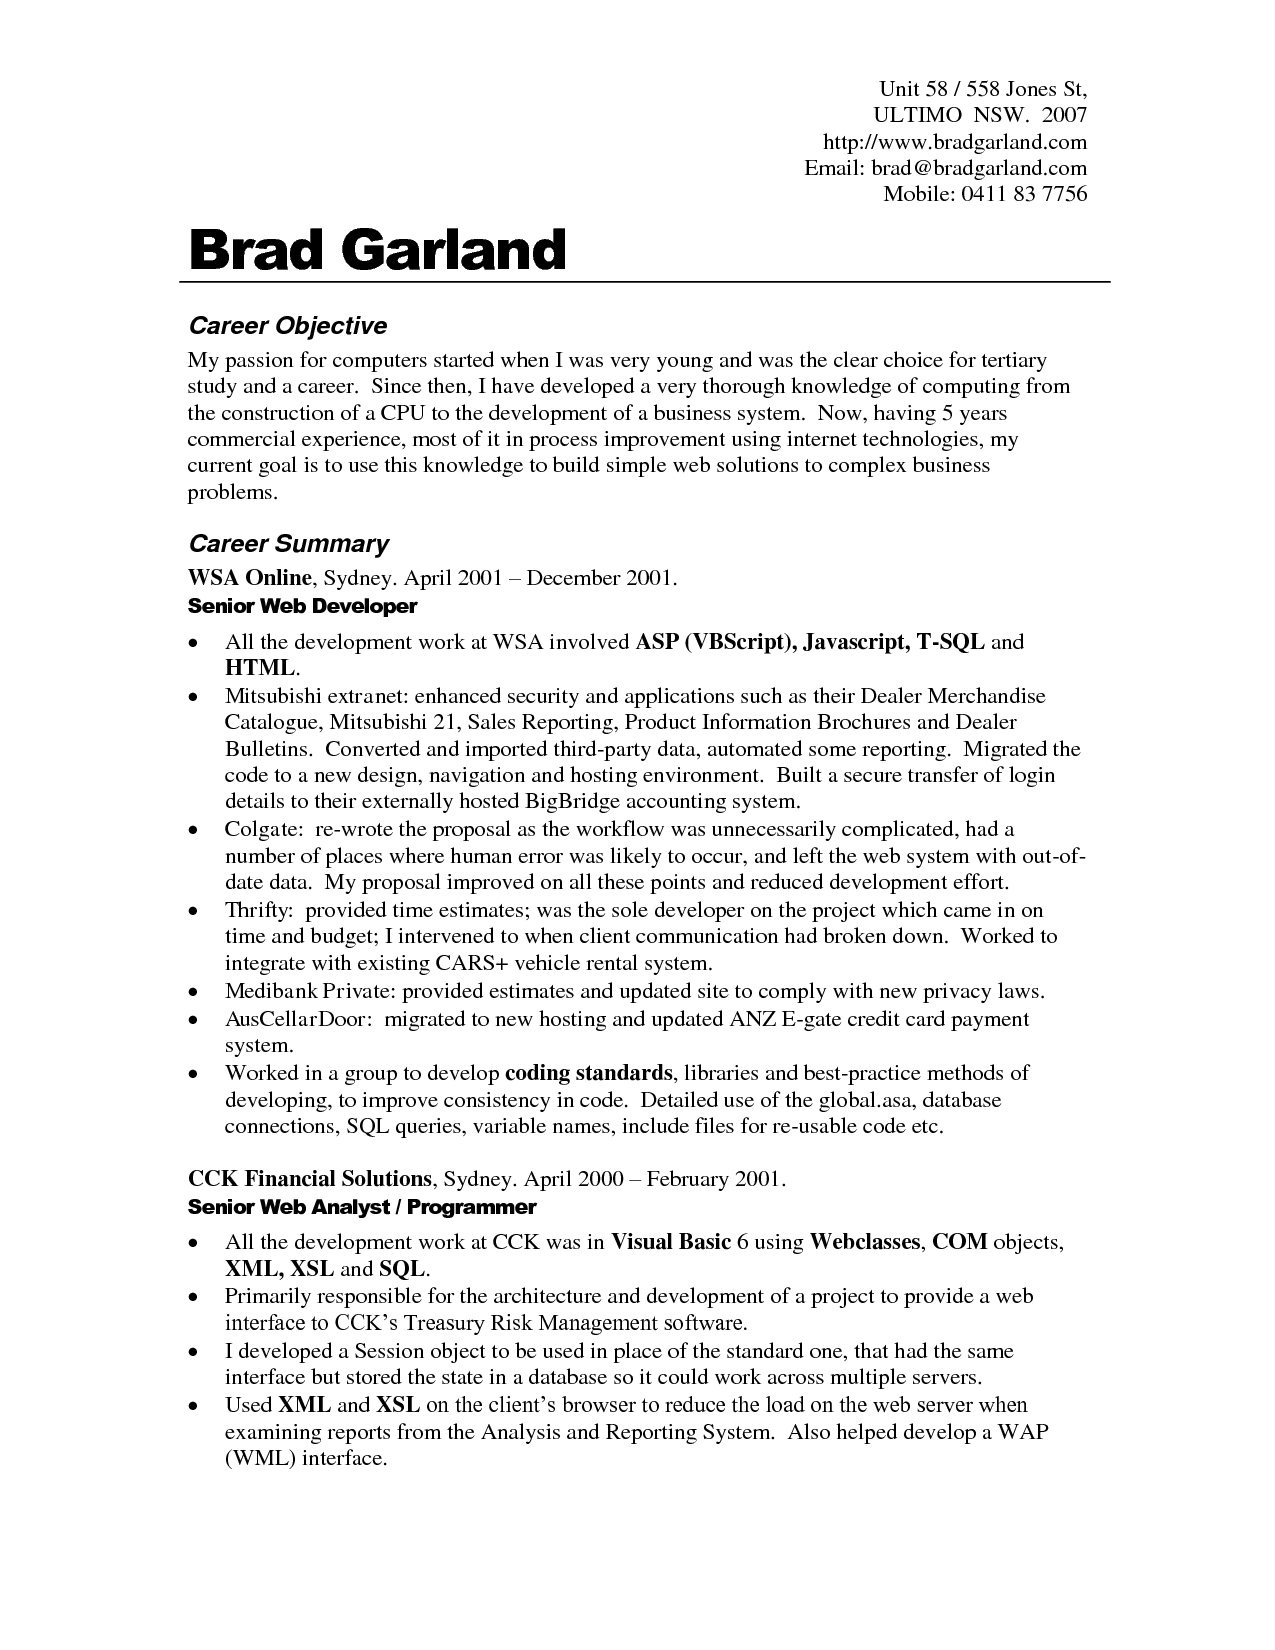 Objectives On A Resume Resume Objectives Examples Best Templateresume Objective Examples